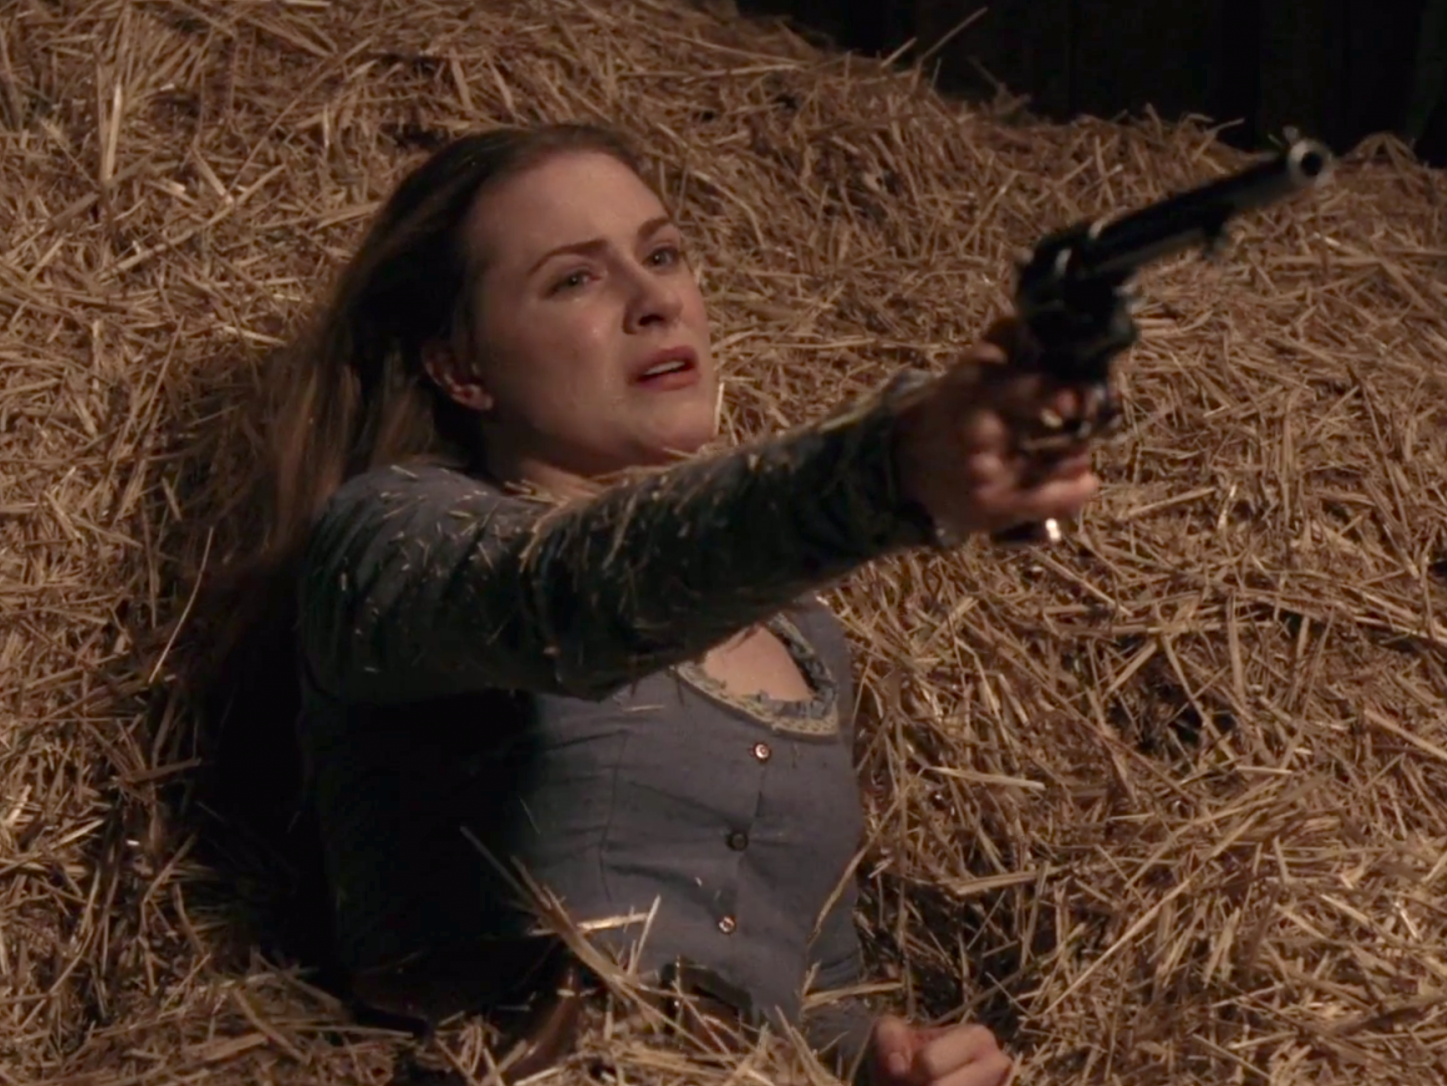 Jonathan Nolan Says 'Westworld' Season 2 Will Focus On Dolores's Journey